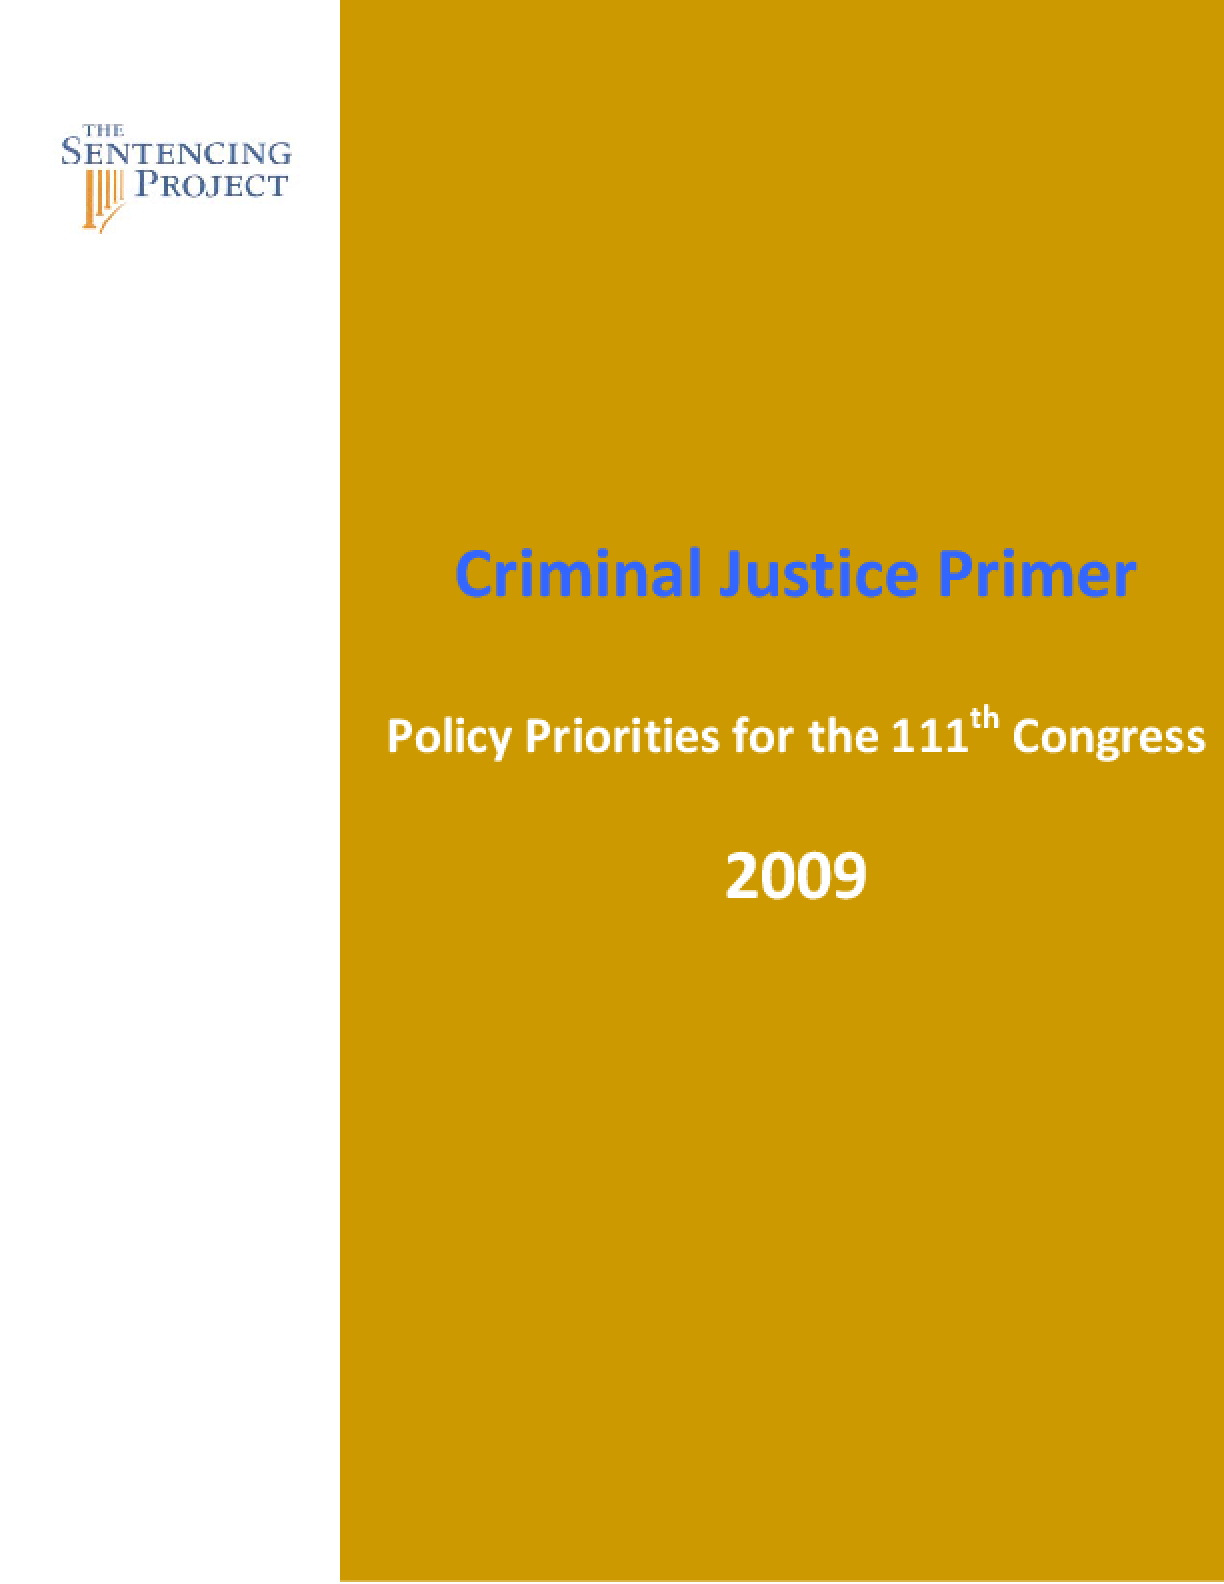 Criminal Justice Primer 2009: Policy Priorities for the 111th Congress